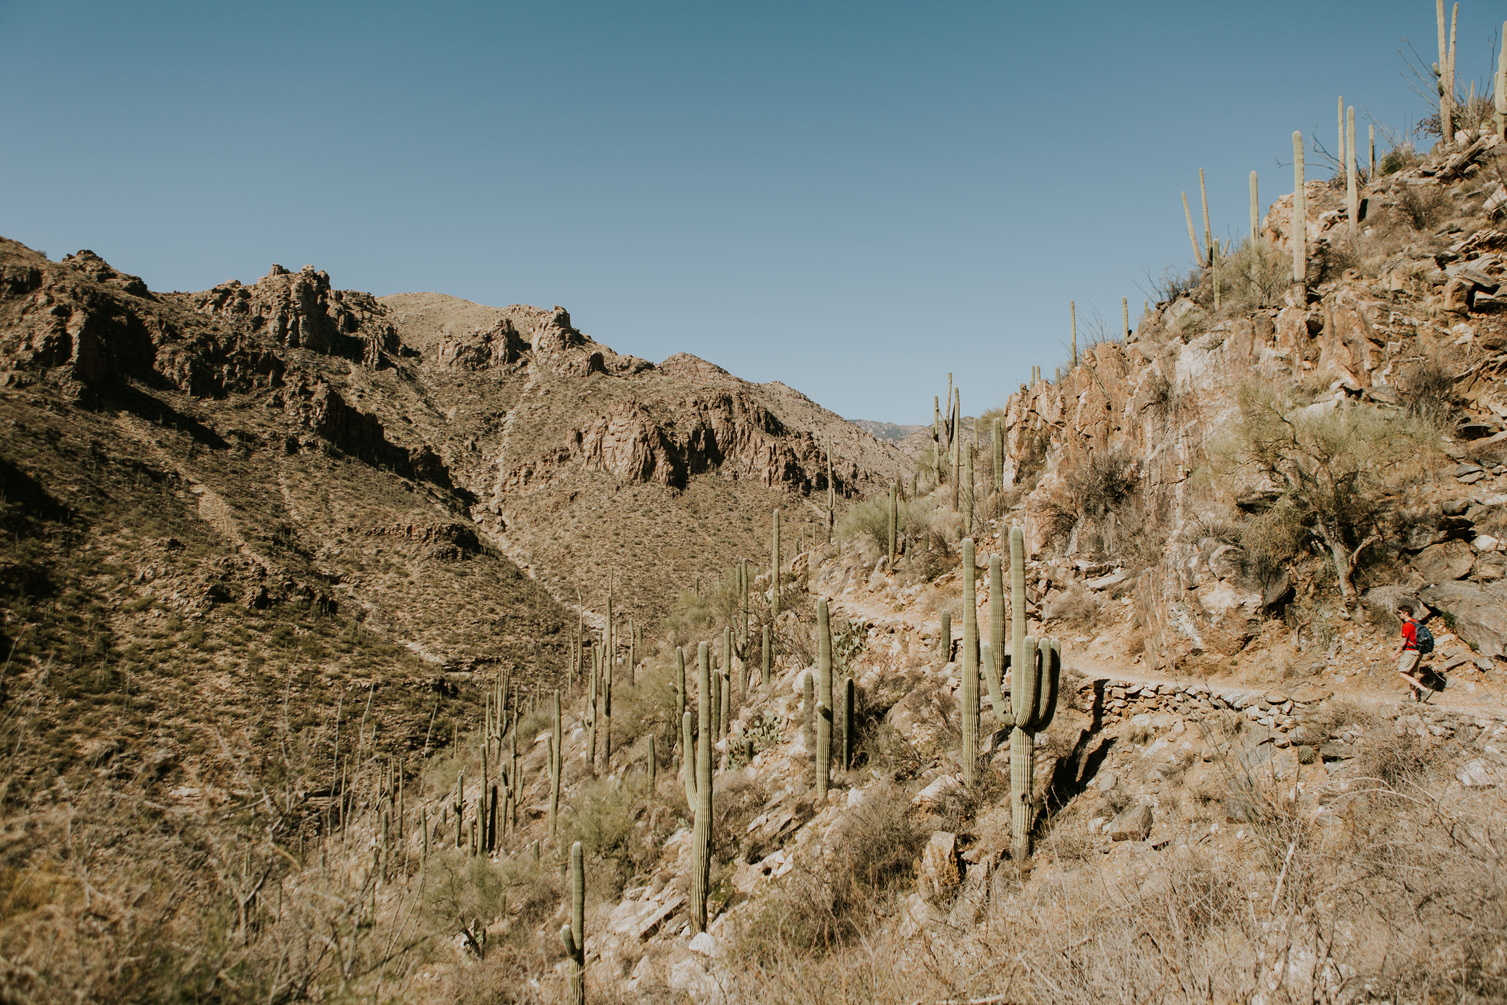 CindyGiovagnoli_Tucson_Arizona_Sabino_Canyon_Phone_Line_Trail_Uinta_Brewing_saguaro_cactus_desert_hiking-002.jpg